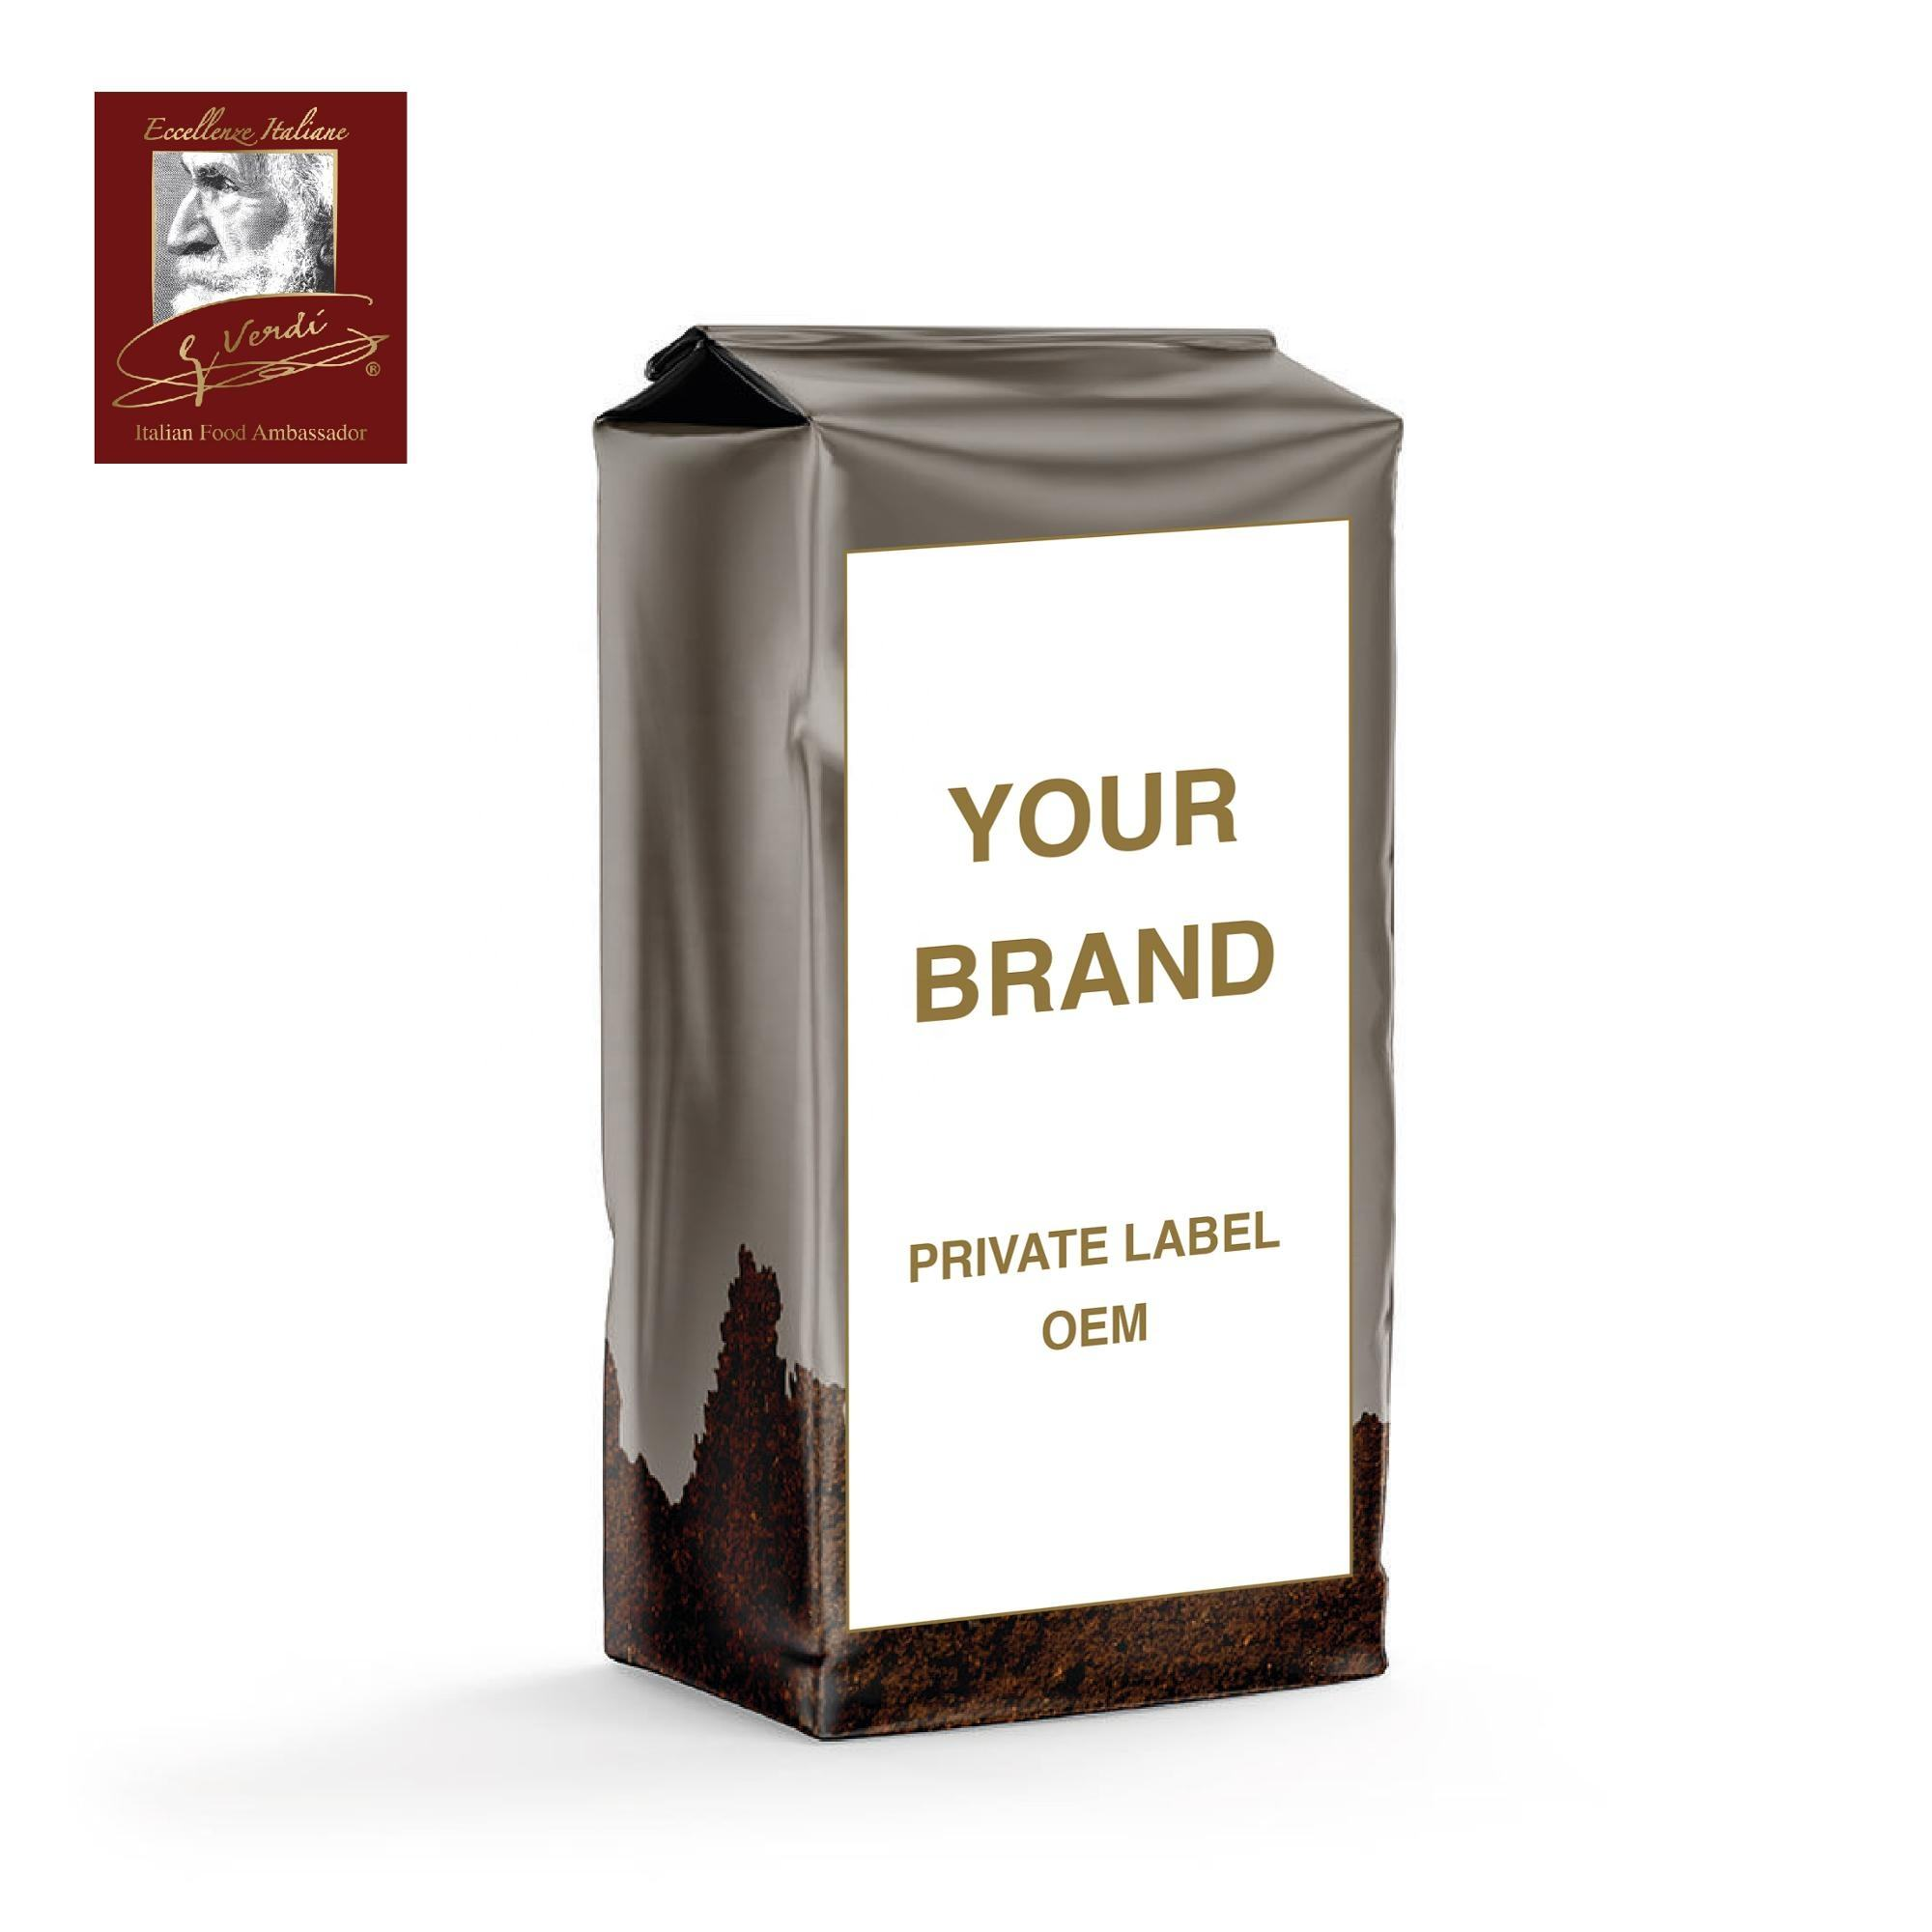 250g Ground Coffee Bag OEM Private Label Ground Moka Coffee